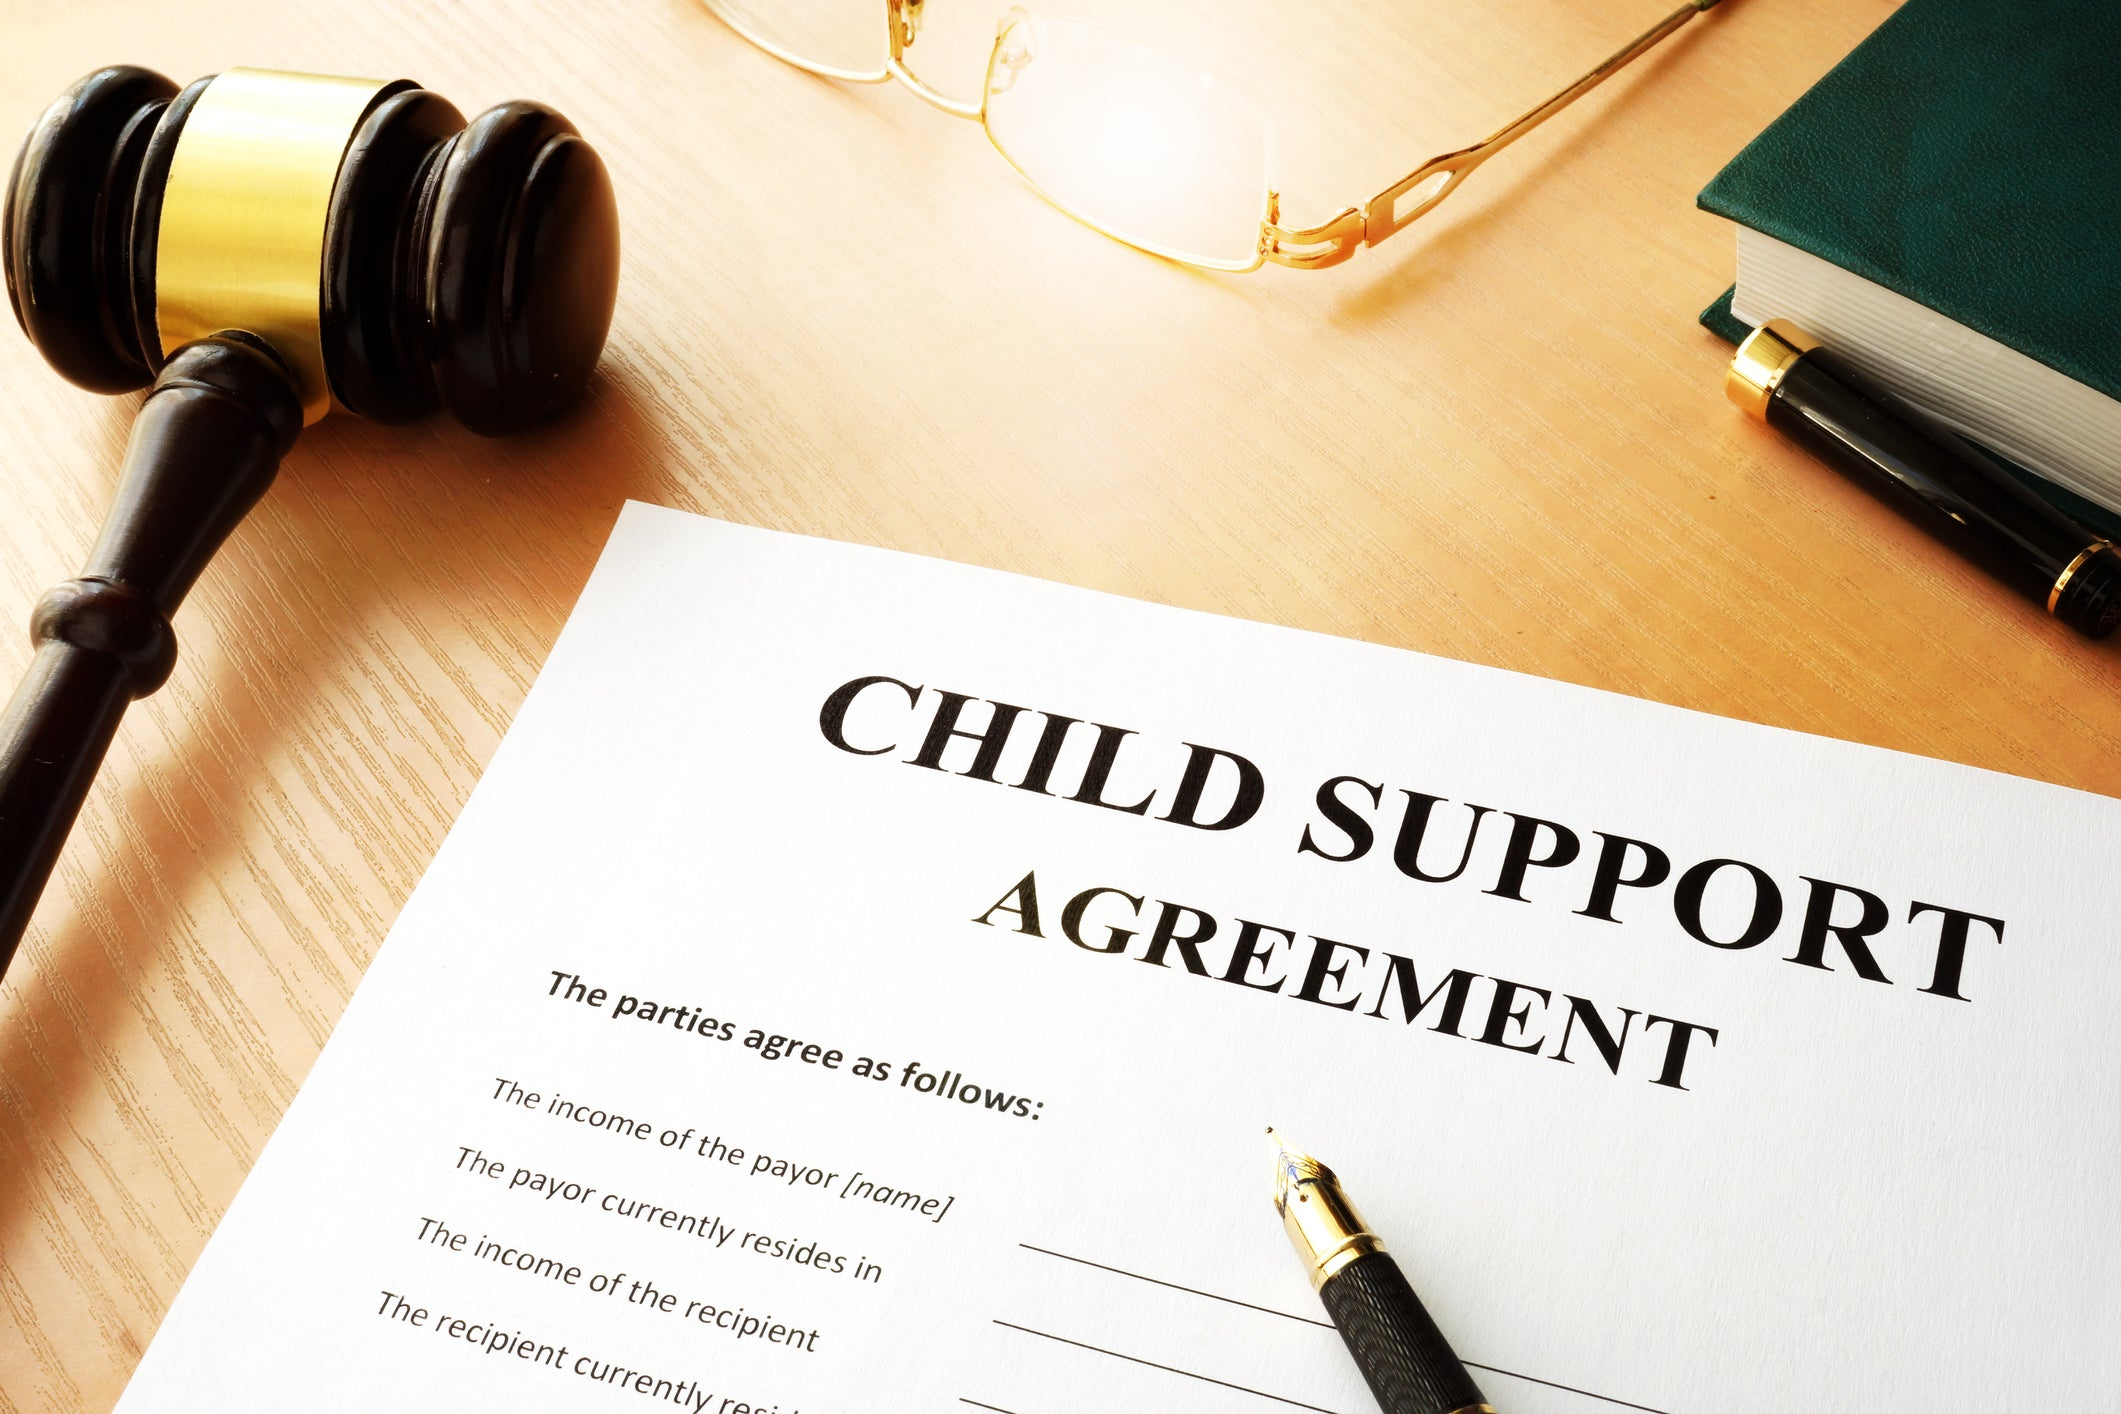 Binding Child Support Agreements - Almost Always Binding